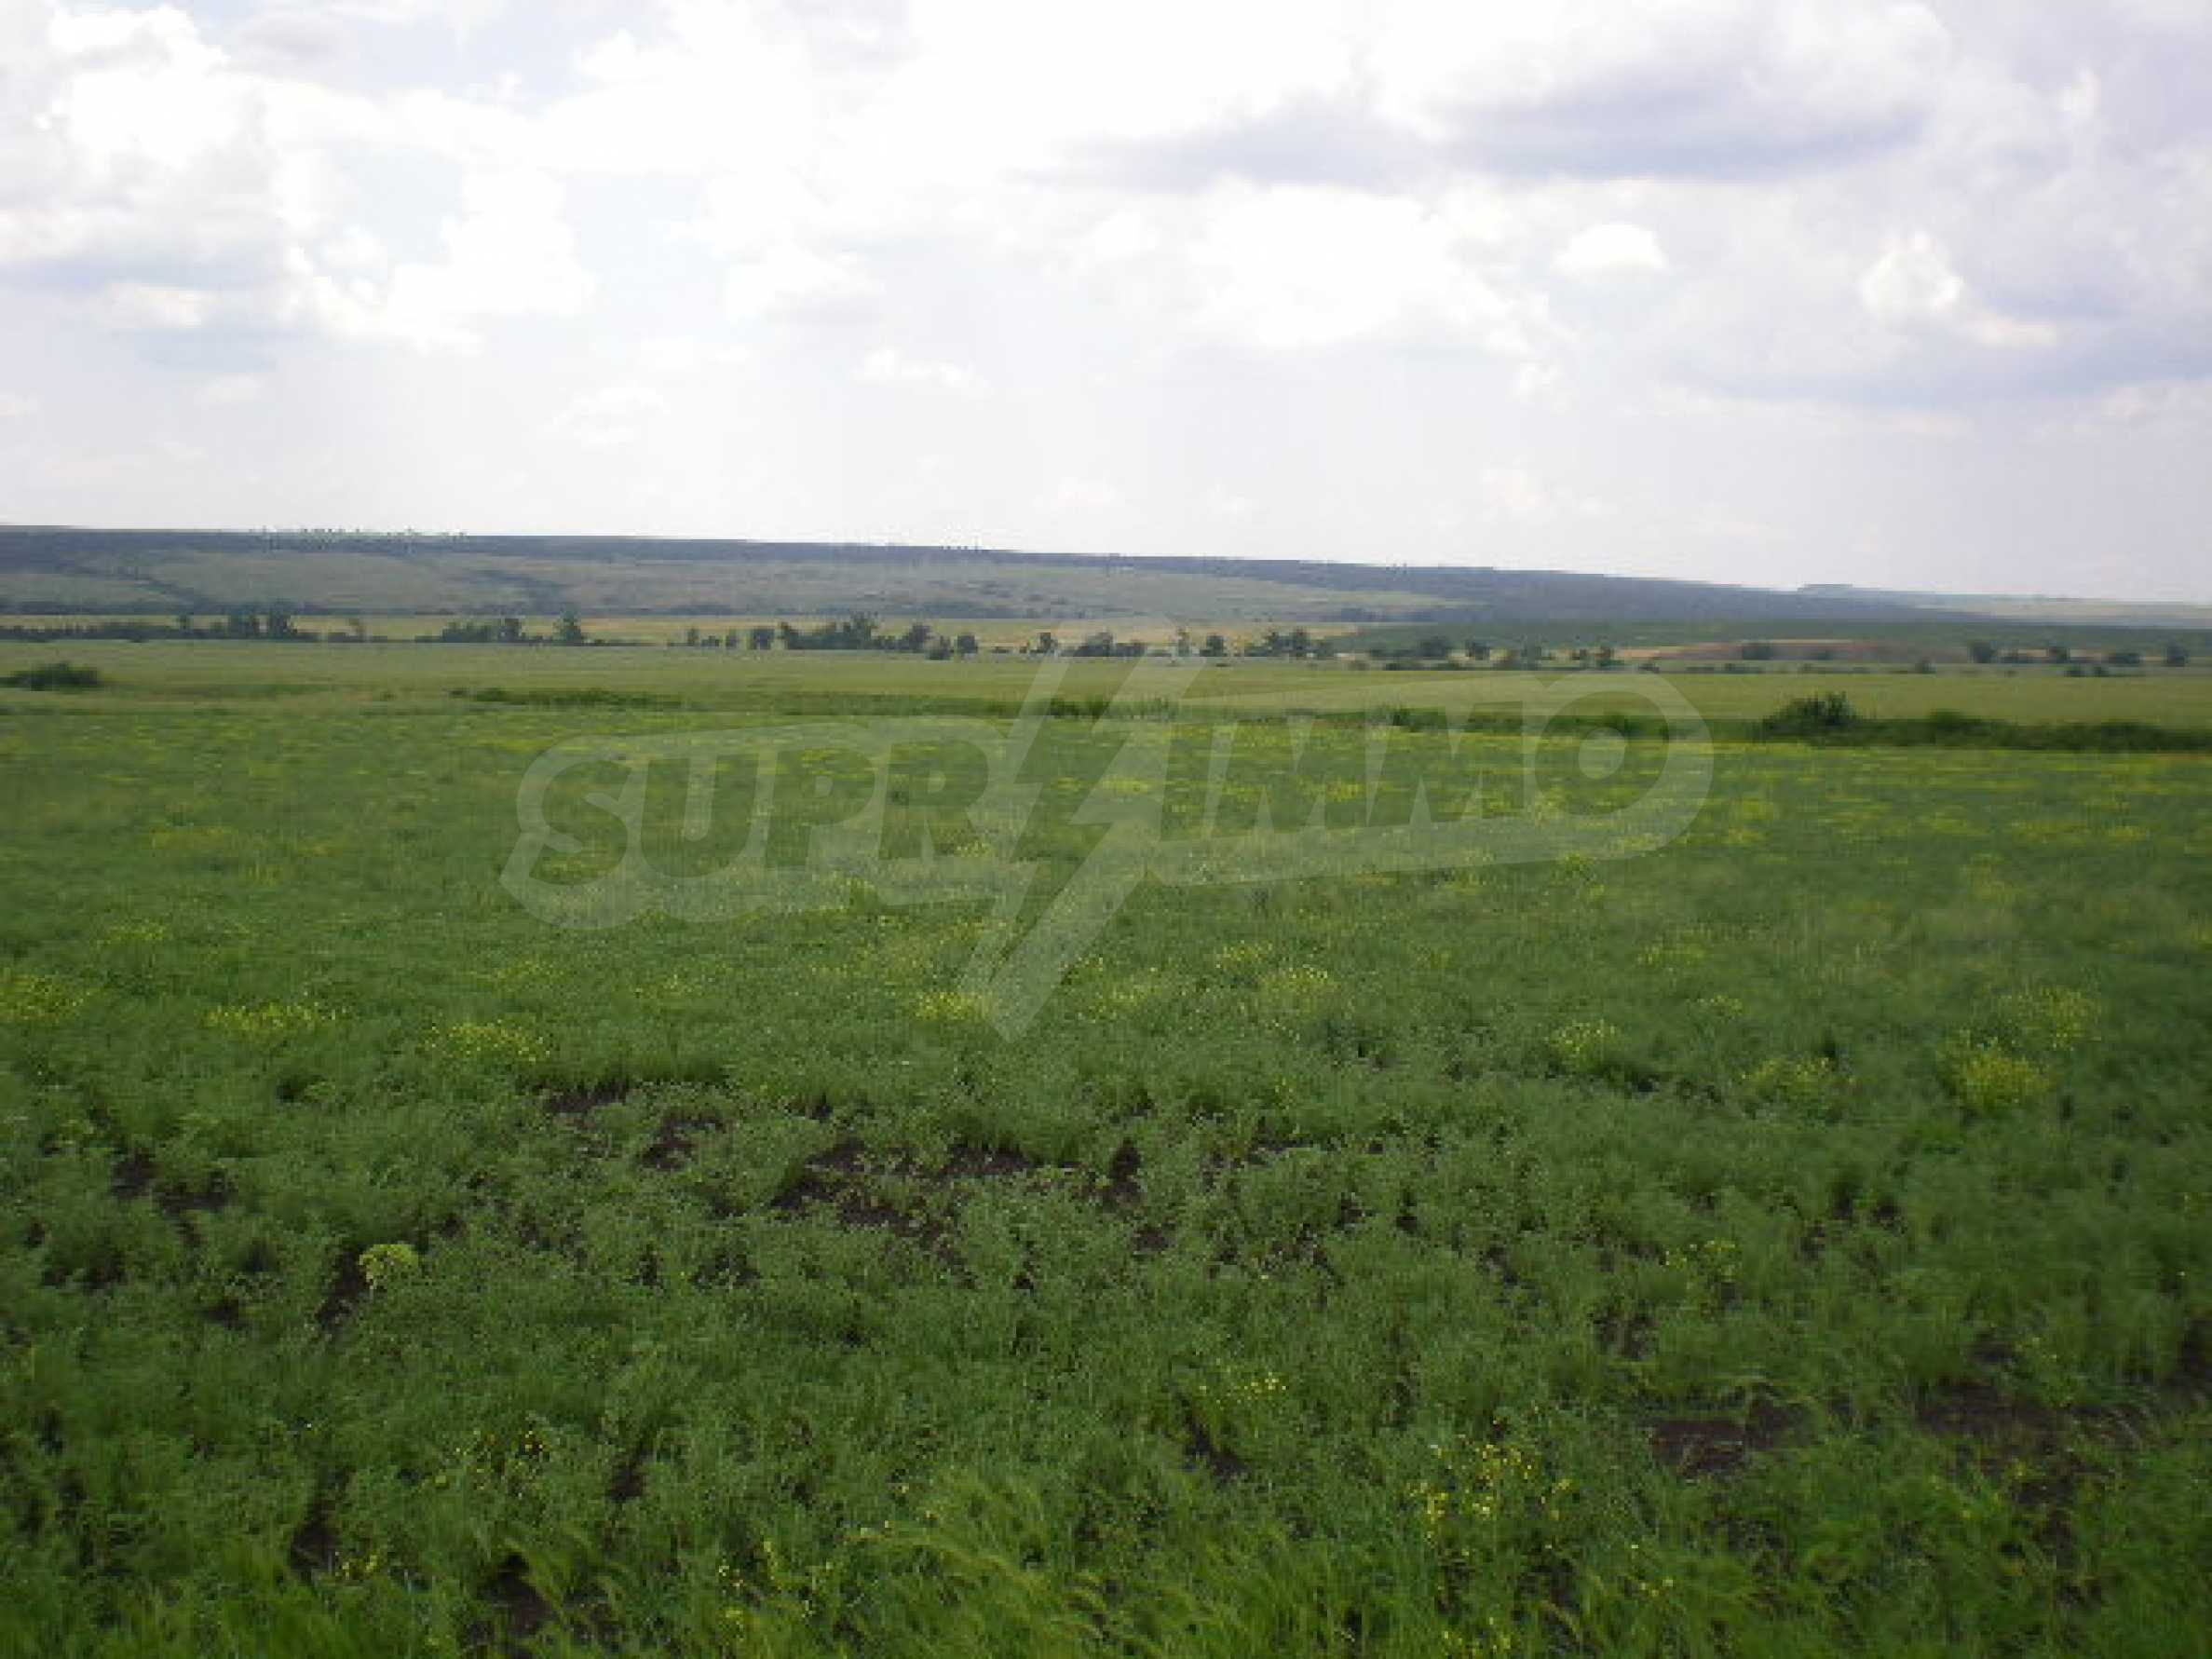 Huge plot of agricultural land near the motorway.